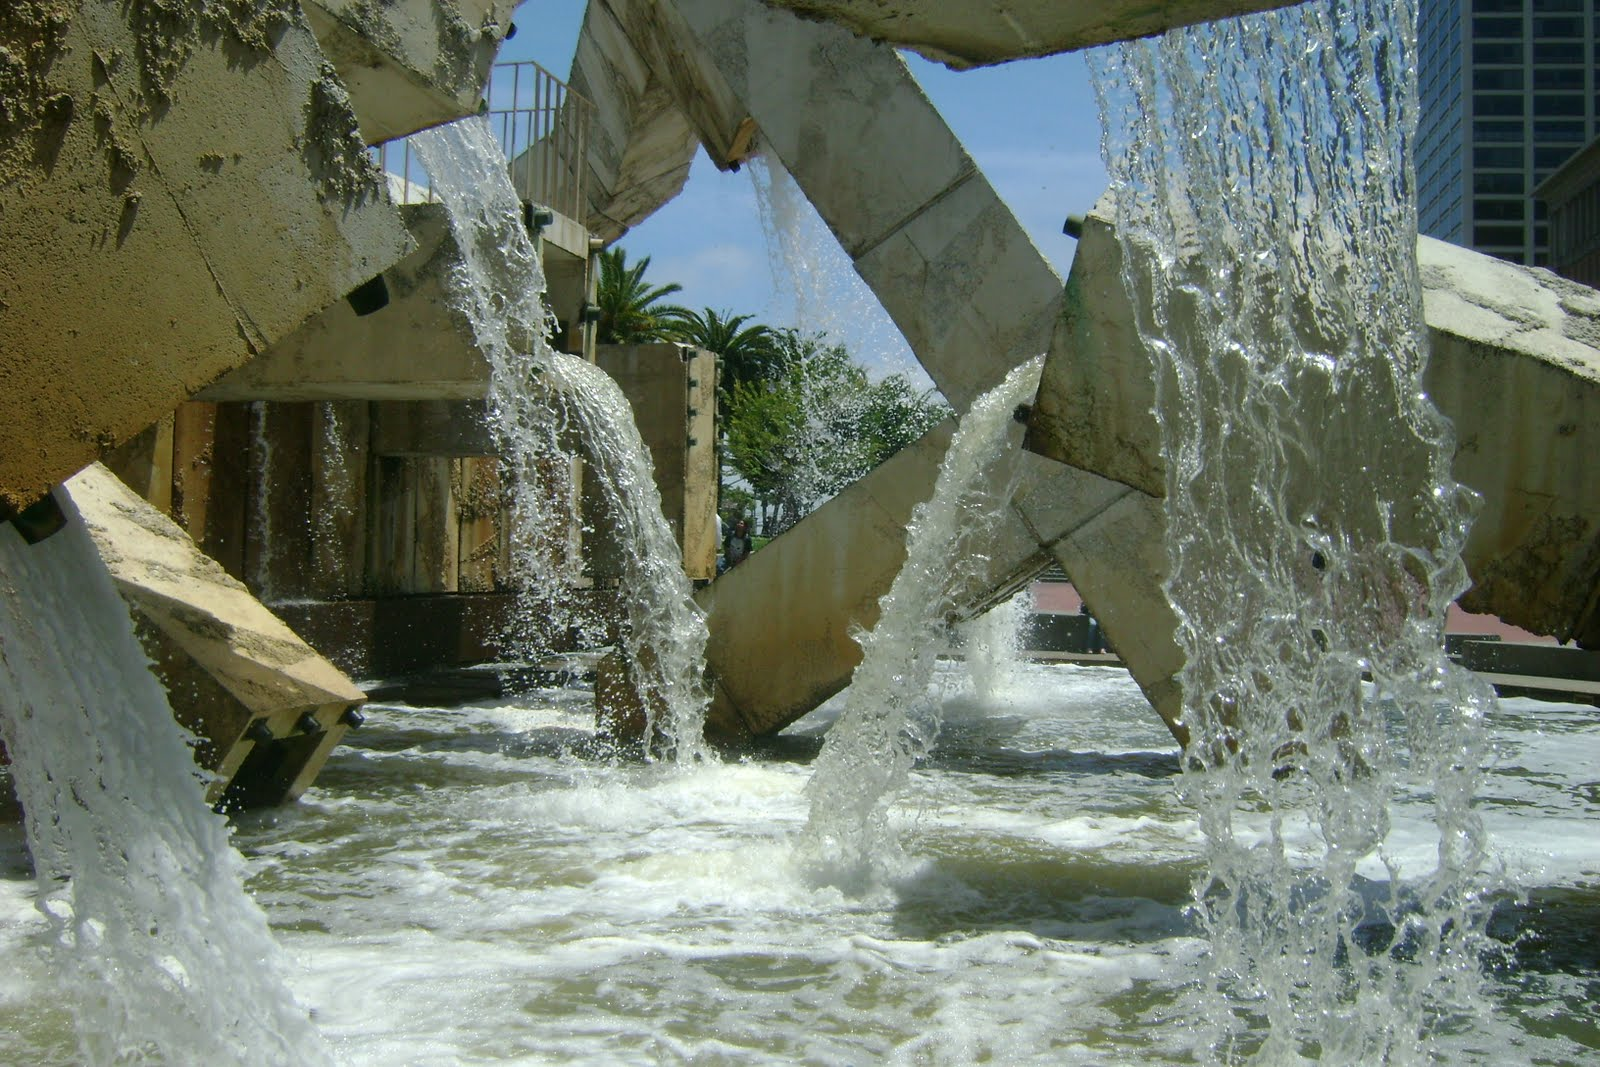 Water Falls This Image Was Taken In San Francisco It An Of A Fountain I Chose Because The Flow And Square Shape Pipe